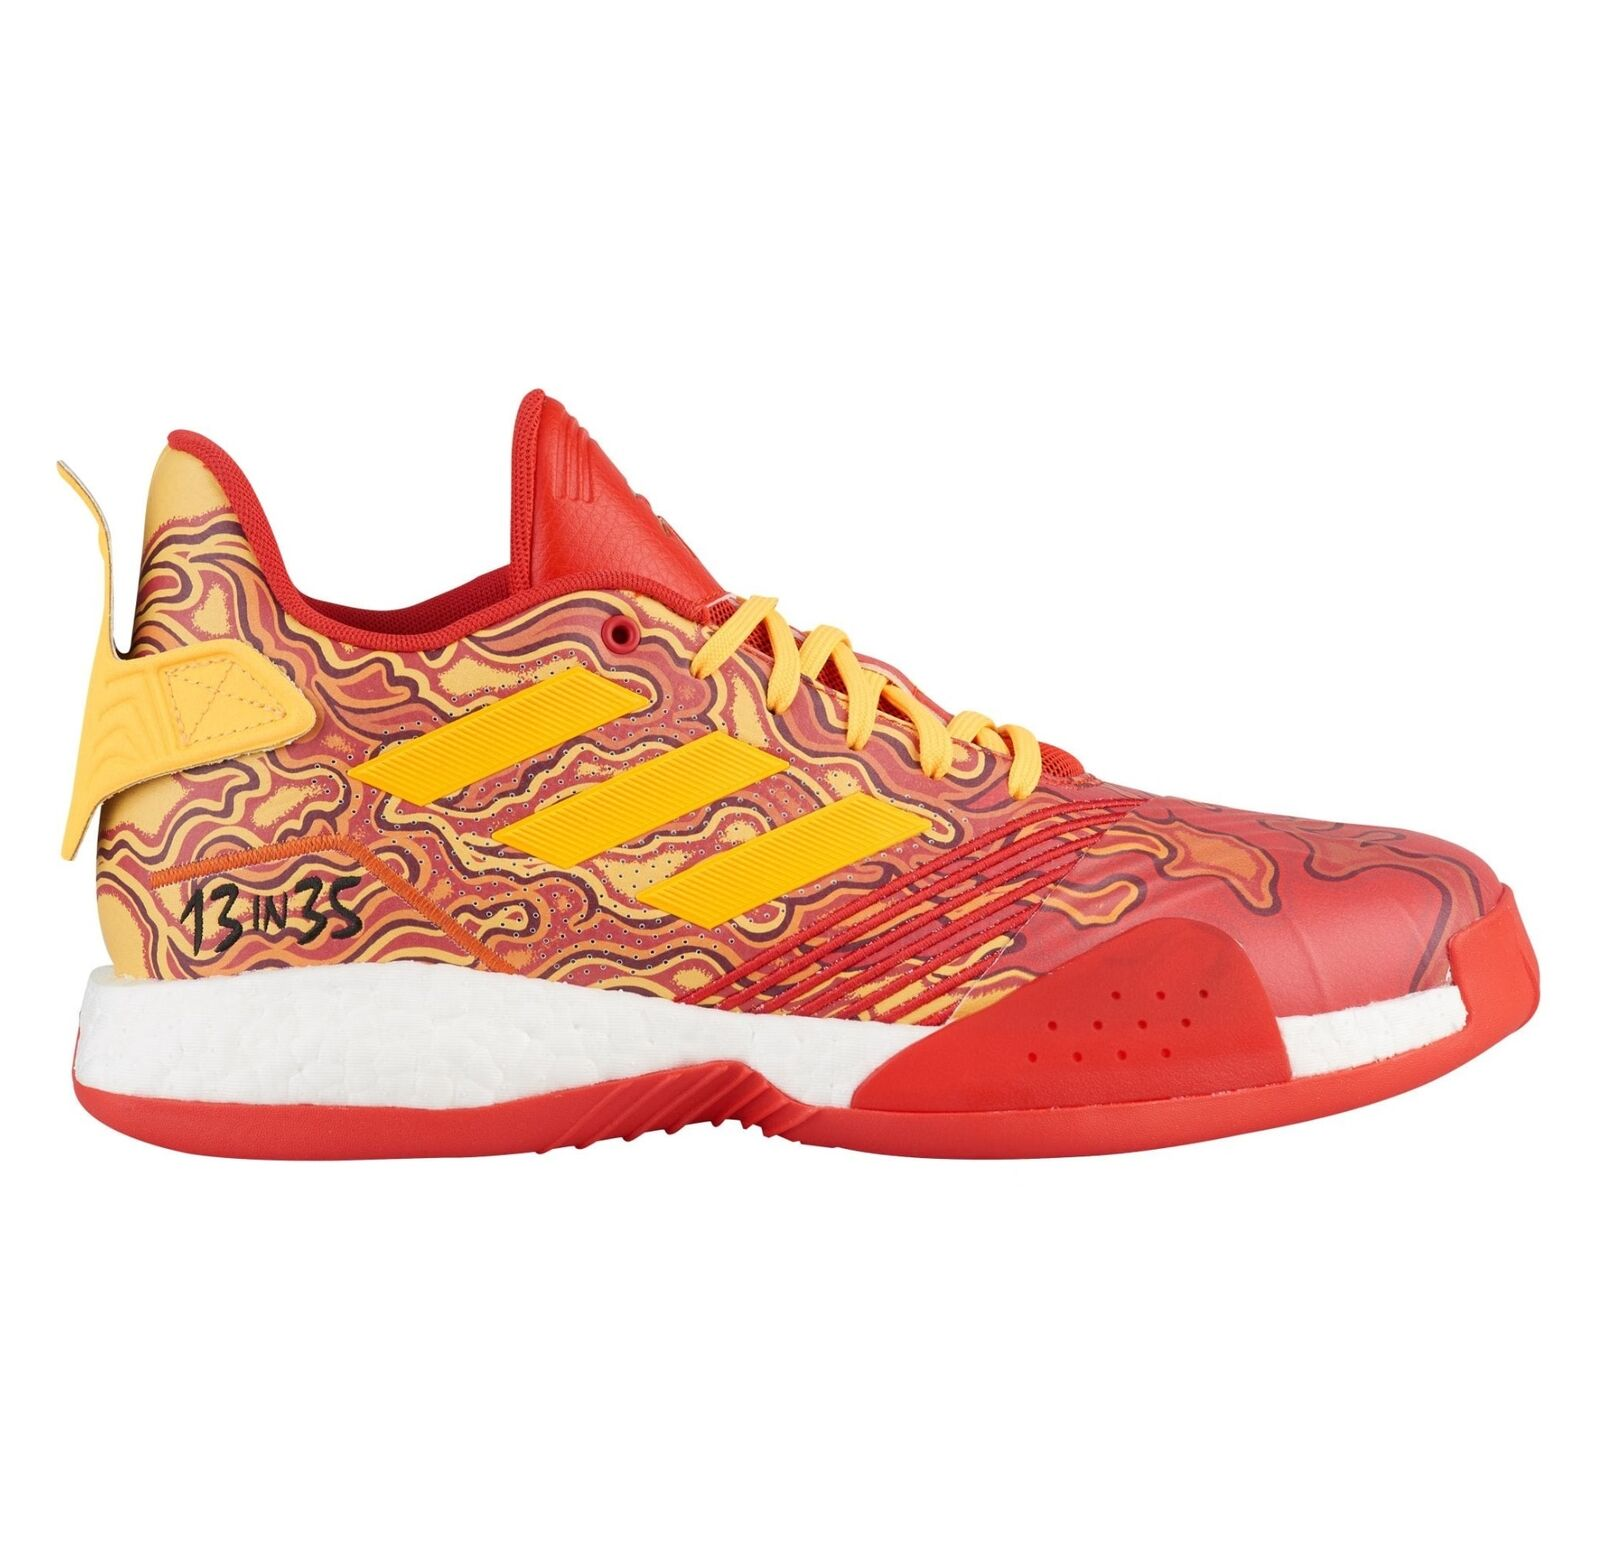 Adidas TMAC Millenium Mens G28376 Scarlet Red gold Basketball shoes Size 9.5